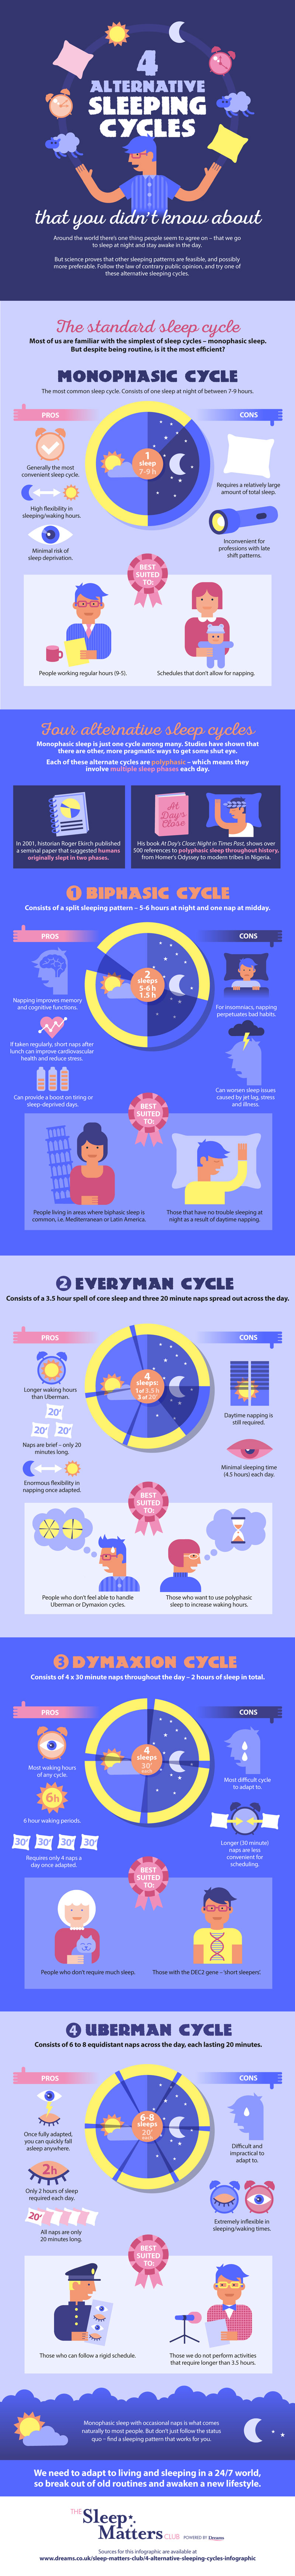 4 Alternative Sleeping Cycles That You Didn't Know About